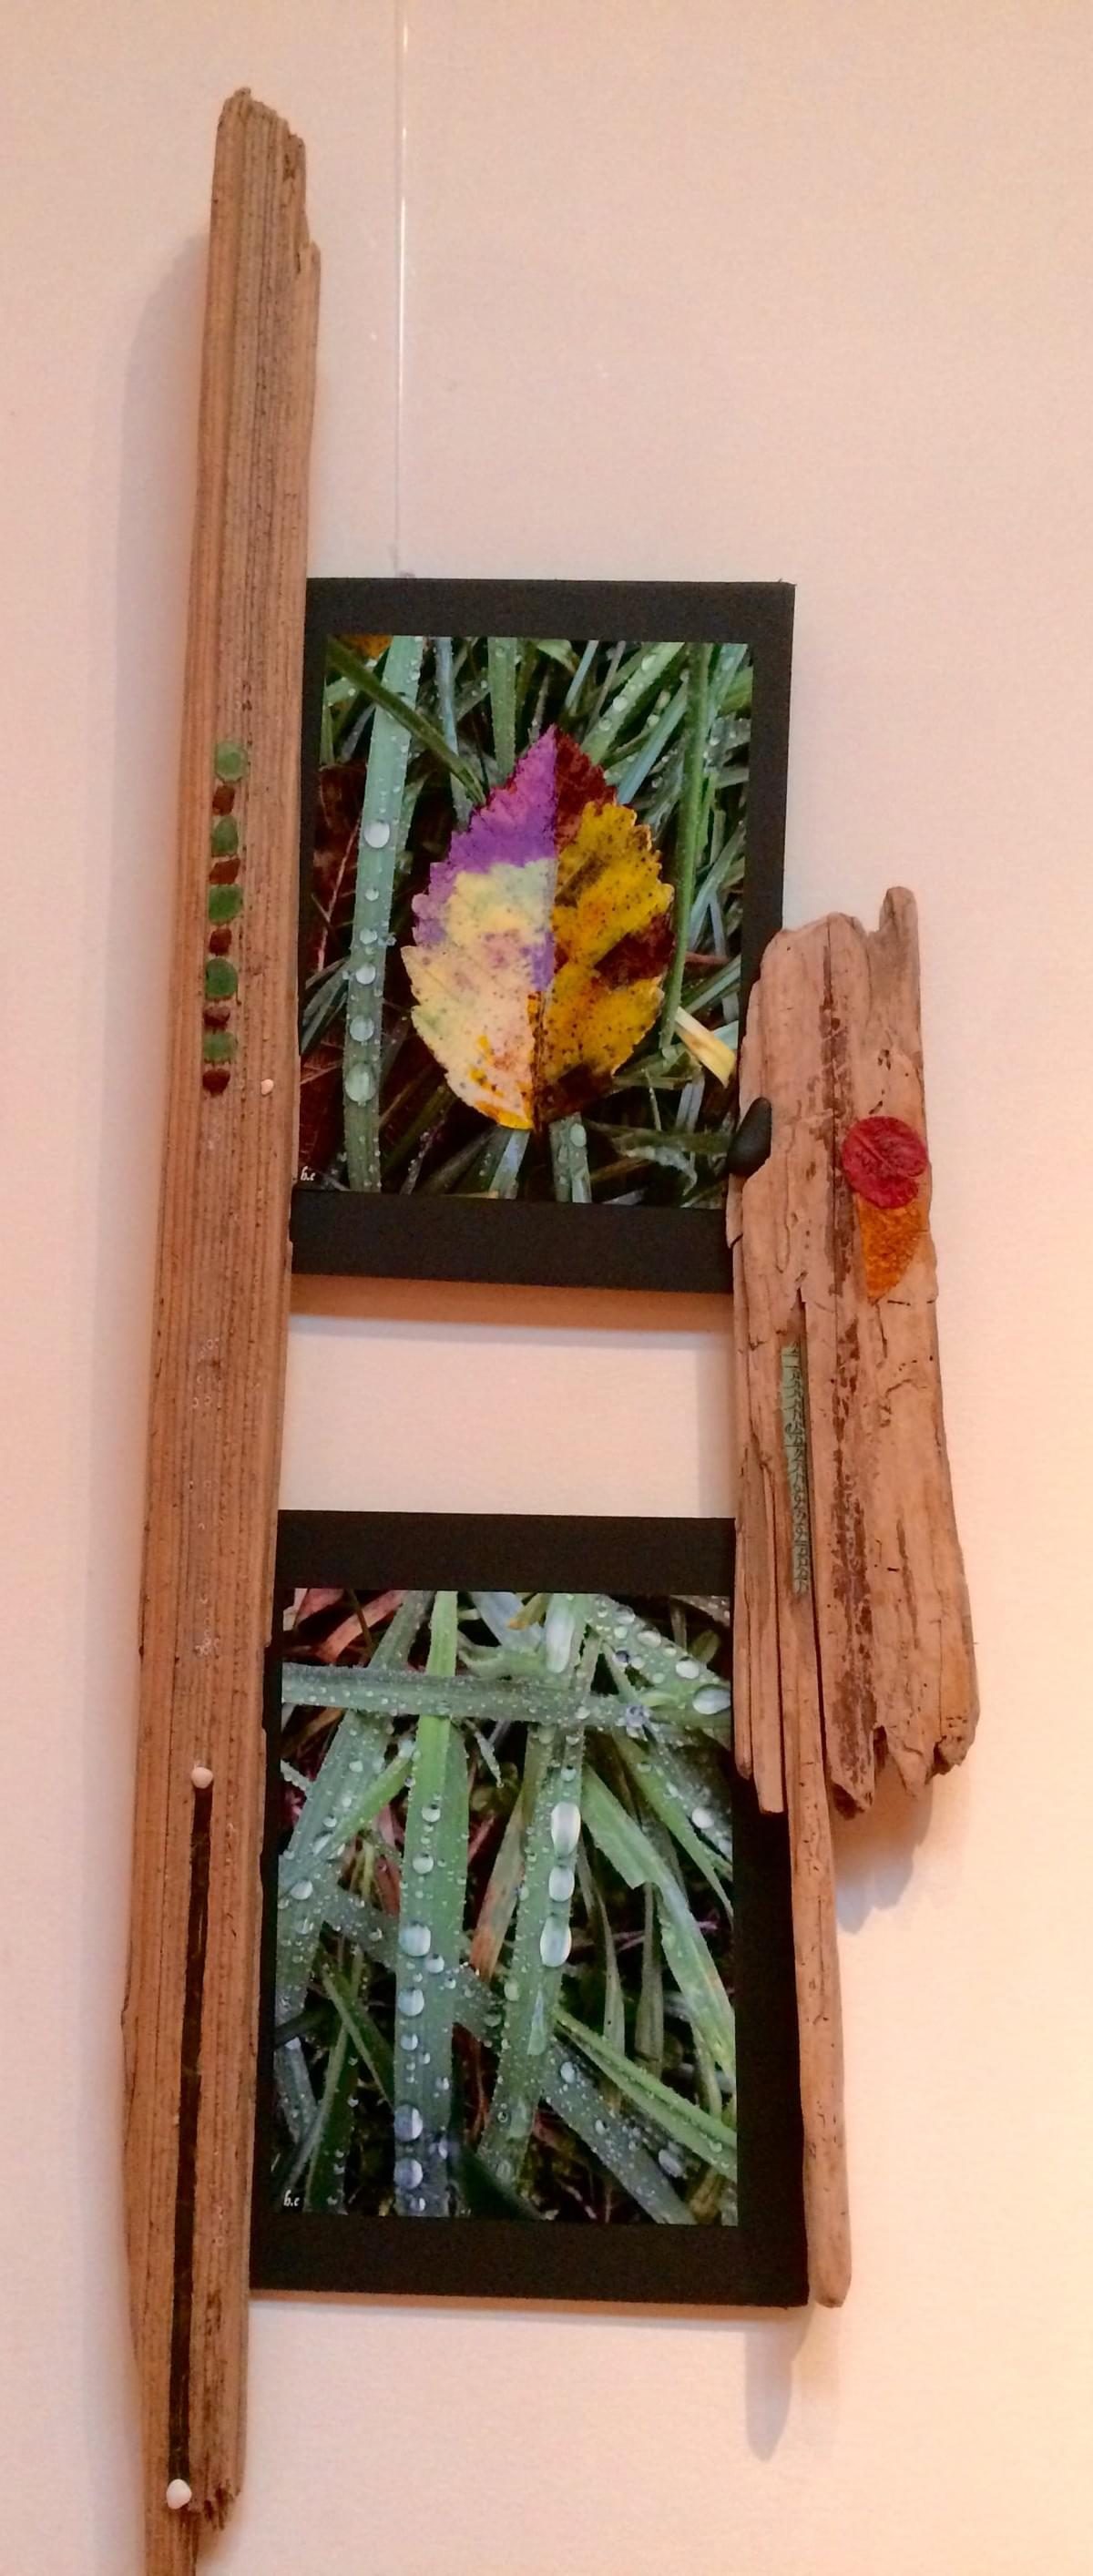 These photos were taken during my early morning walkabout in the Kitsilano neighborhood of Vancouver, spring of 2016. The wood pieces, beach glass, seaweed and shells were harvested from a beach in the Saanich area of the Salish Sea.  The prayer flags were found floating on the wind at the Buddhist retreat center on Mount Tuam, Salt Spring Island.